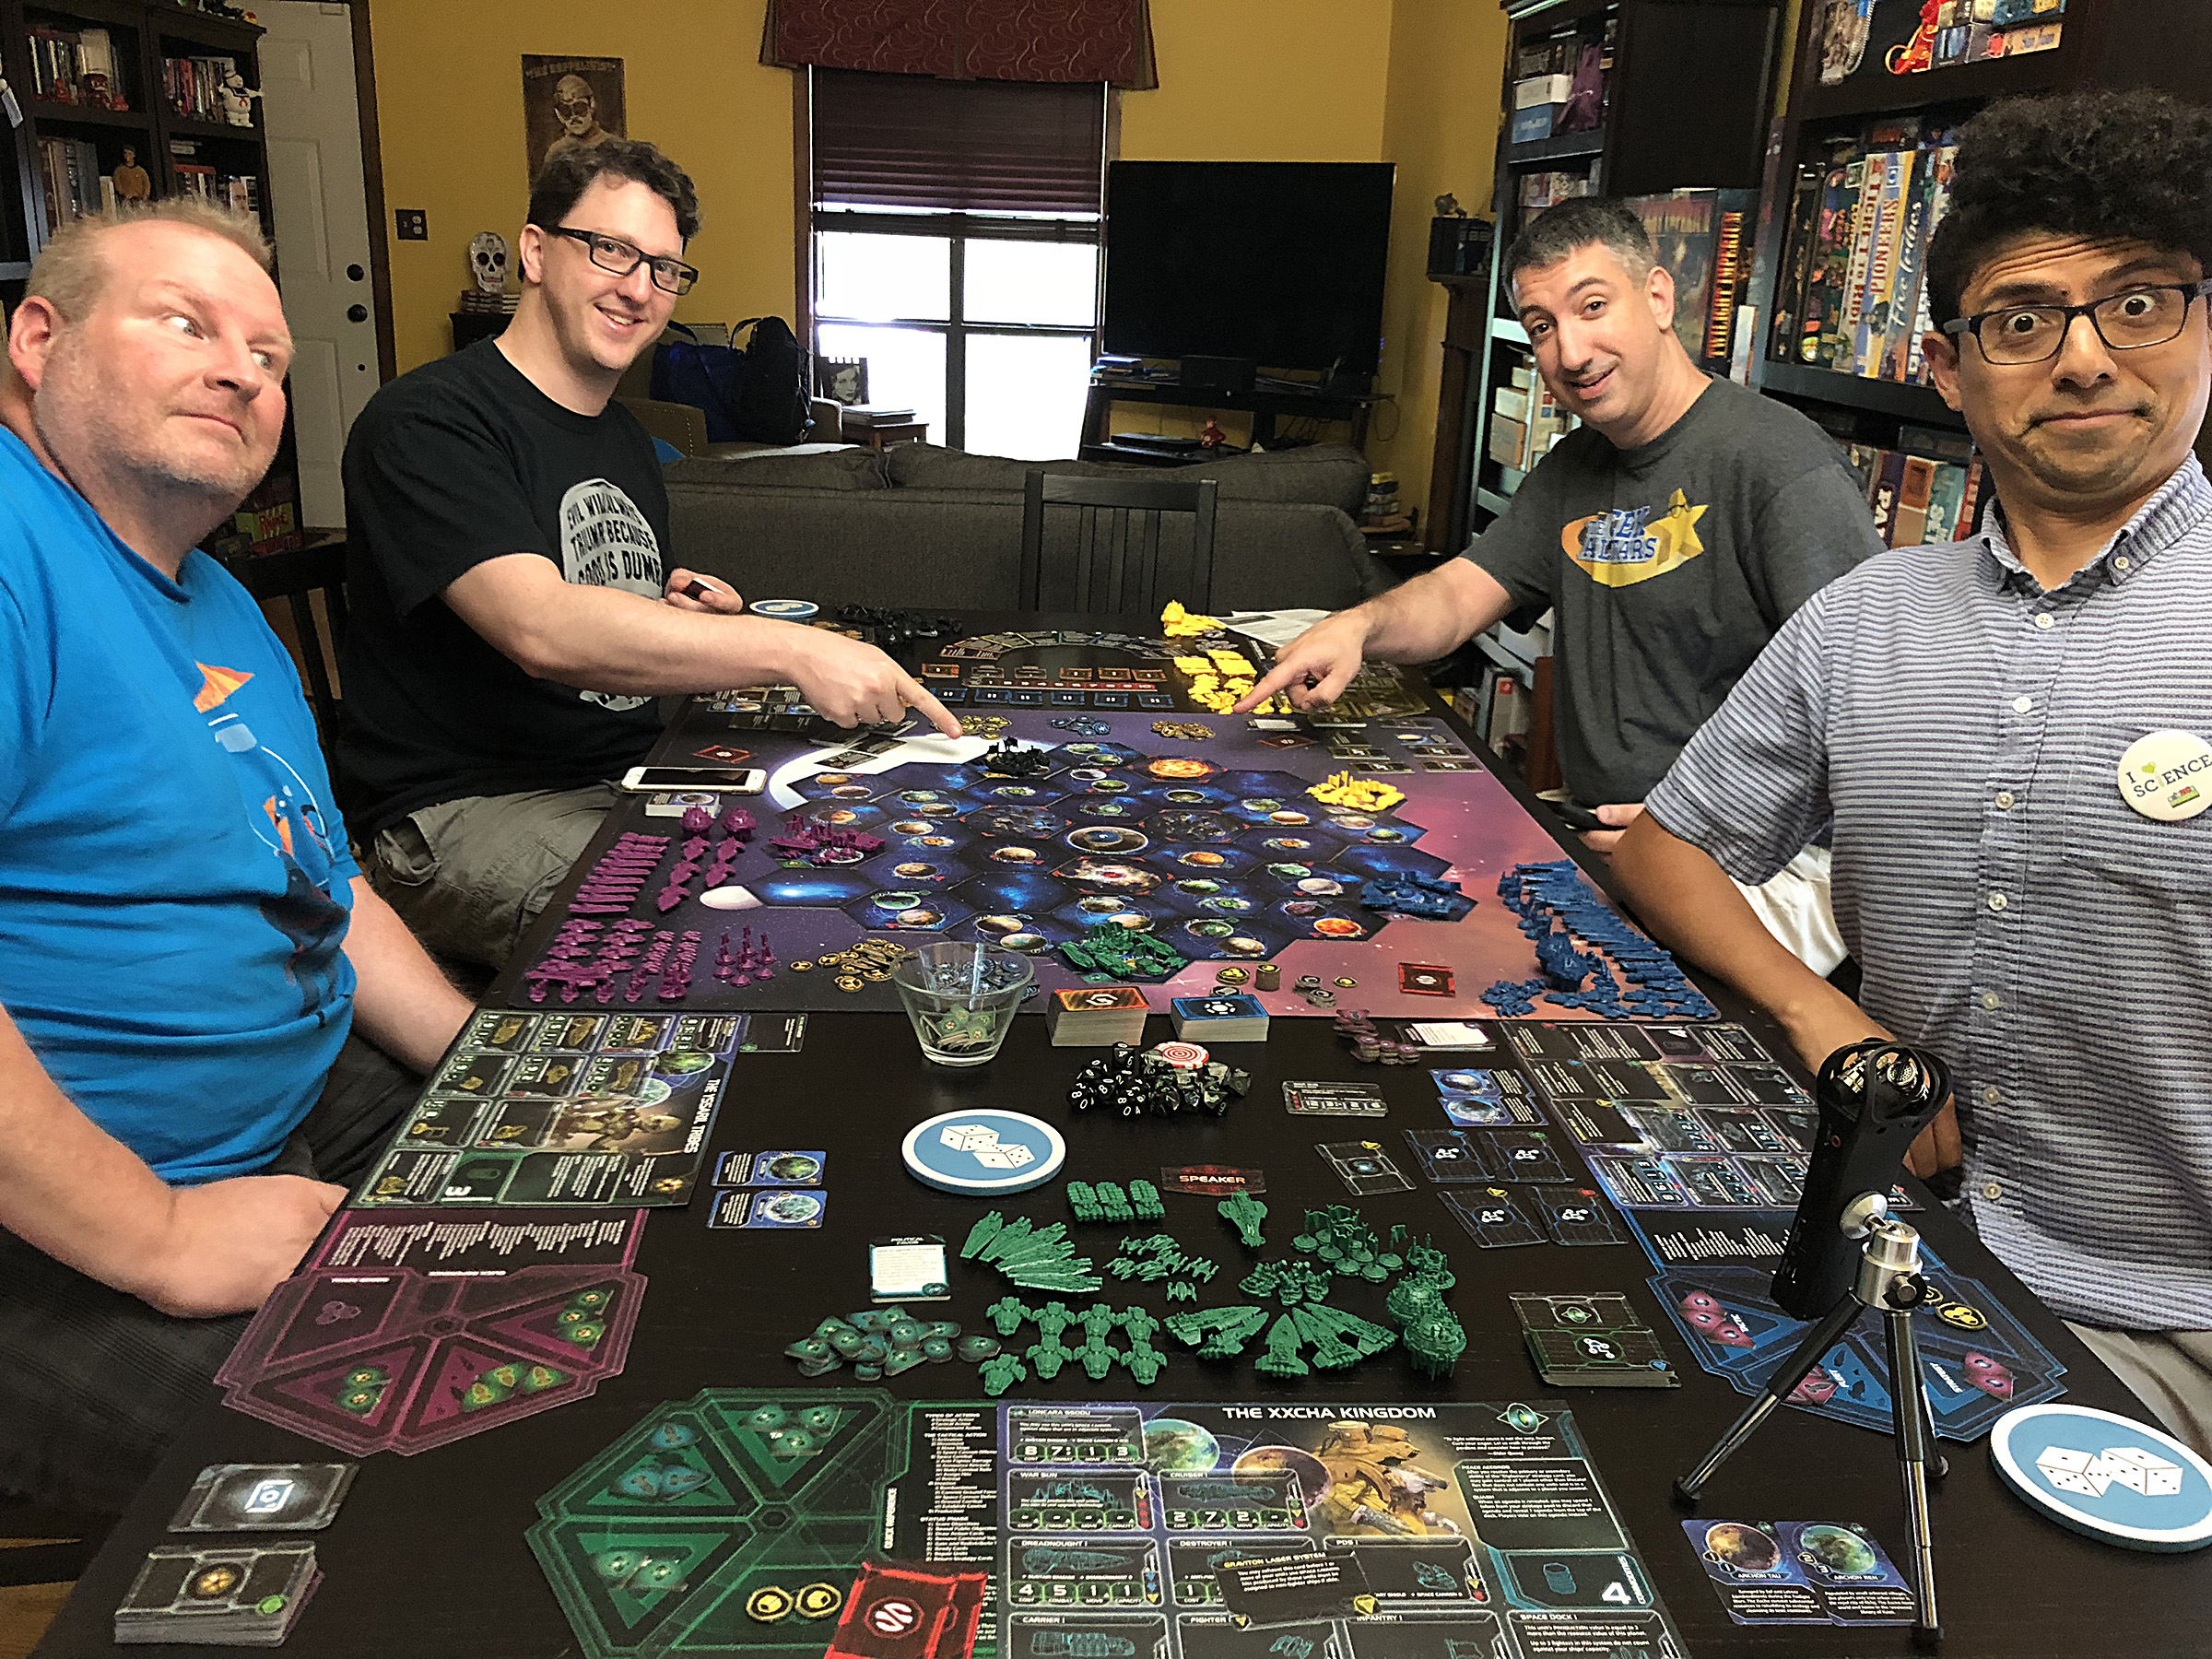 The combatants assemble to decide who will rule Mecatol Rex, and the galaxy! From left to right: Linus as Yssaril Tribes, Matt Wolfe as Naalu Collective, Dan Patriss as Yin Brotherhood, Daniel Solis as Universities of Jol-Nar.